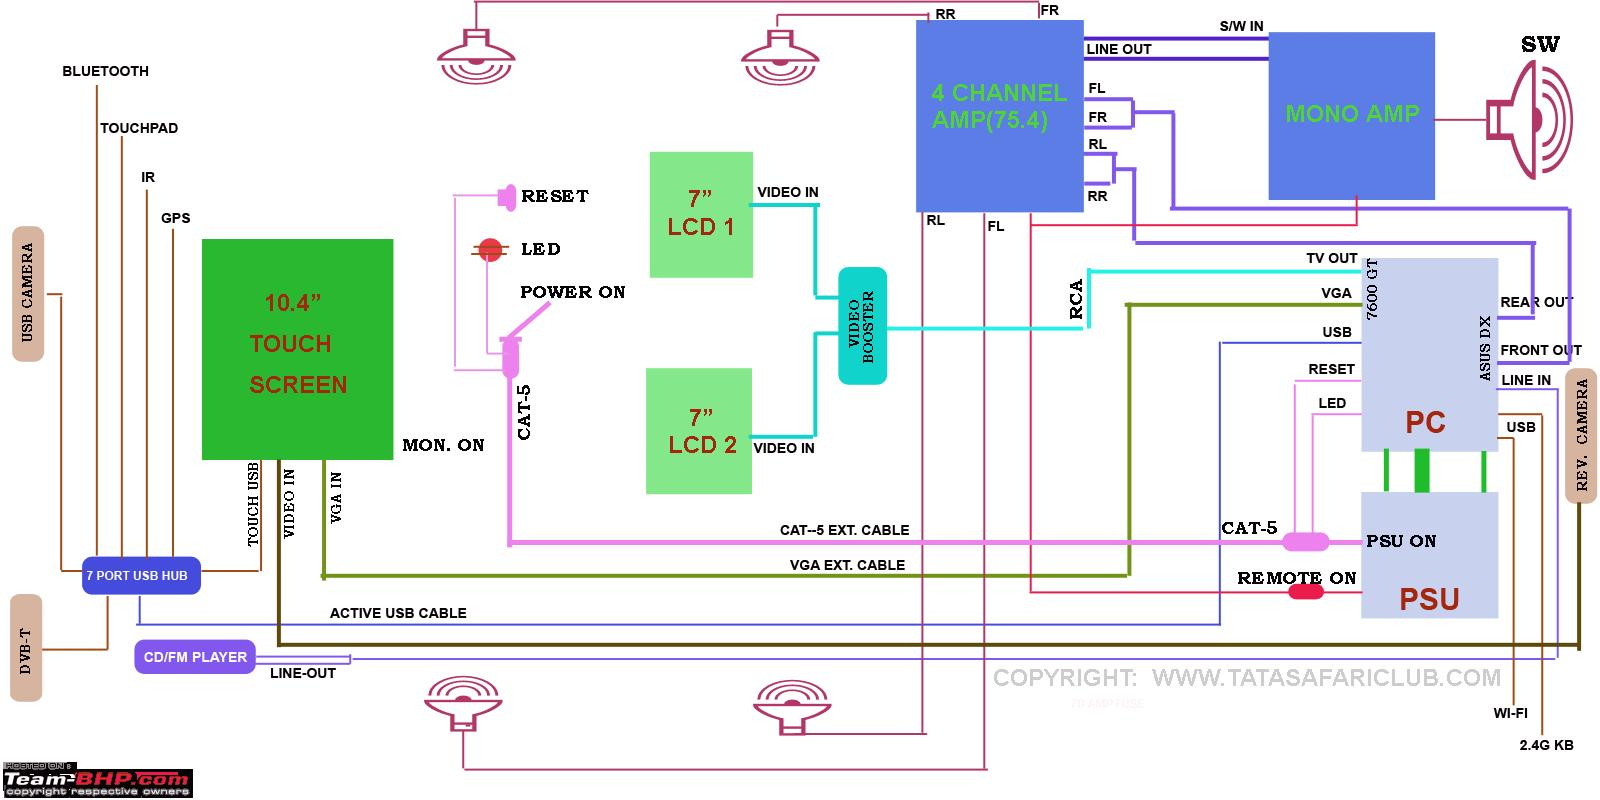 Kazuma Falcon 110cc Wiring Diagram also Tao 50 Scooter Wiring Diagram moreover Watch furthermore Taotao Ata 110 Wiring Diagram as well 121567470138. on tao 110cc chinese atv wiring diagrams